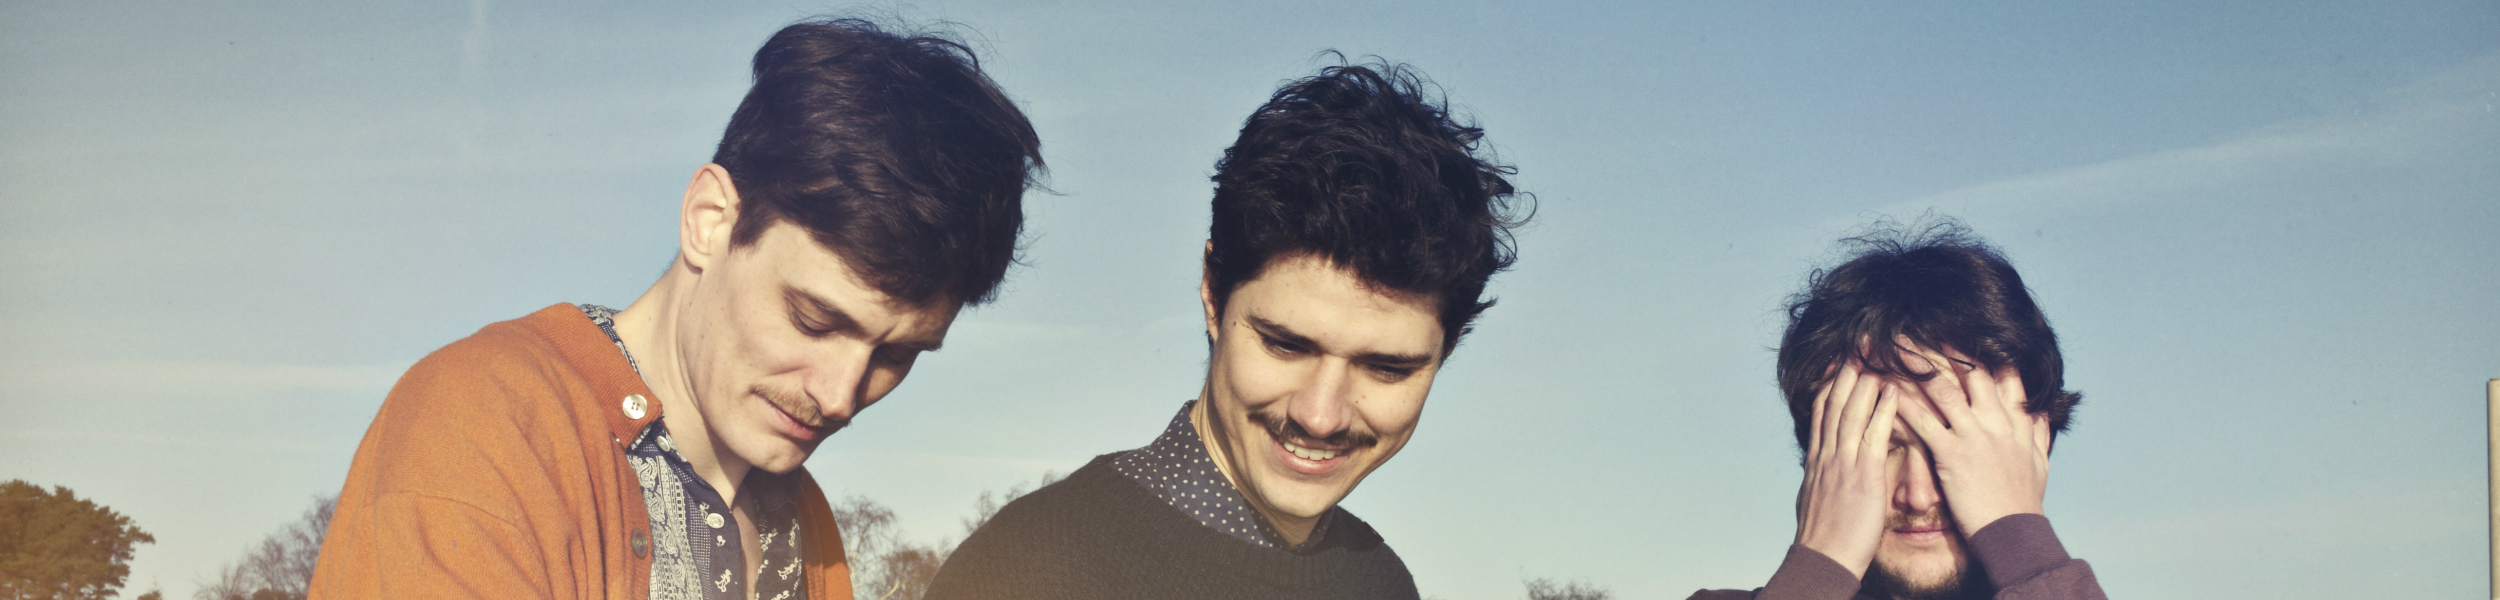 Efterklang - Efterklang Premiere New Video For 'The Ghost'